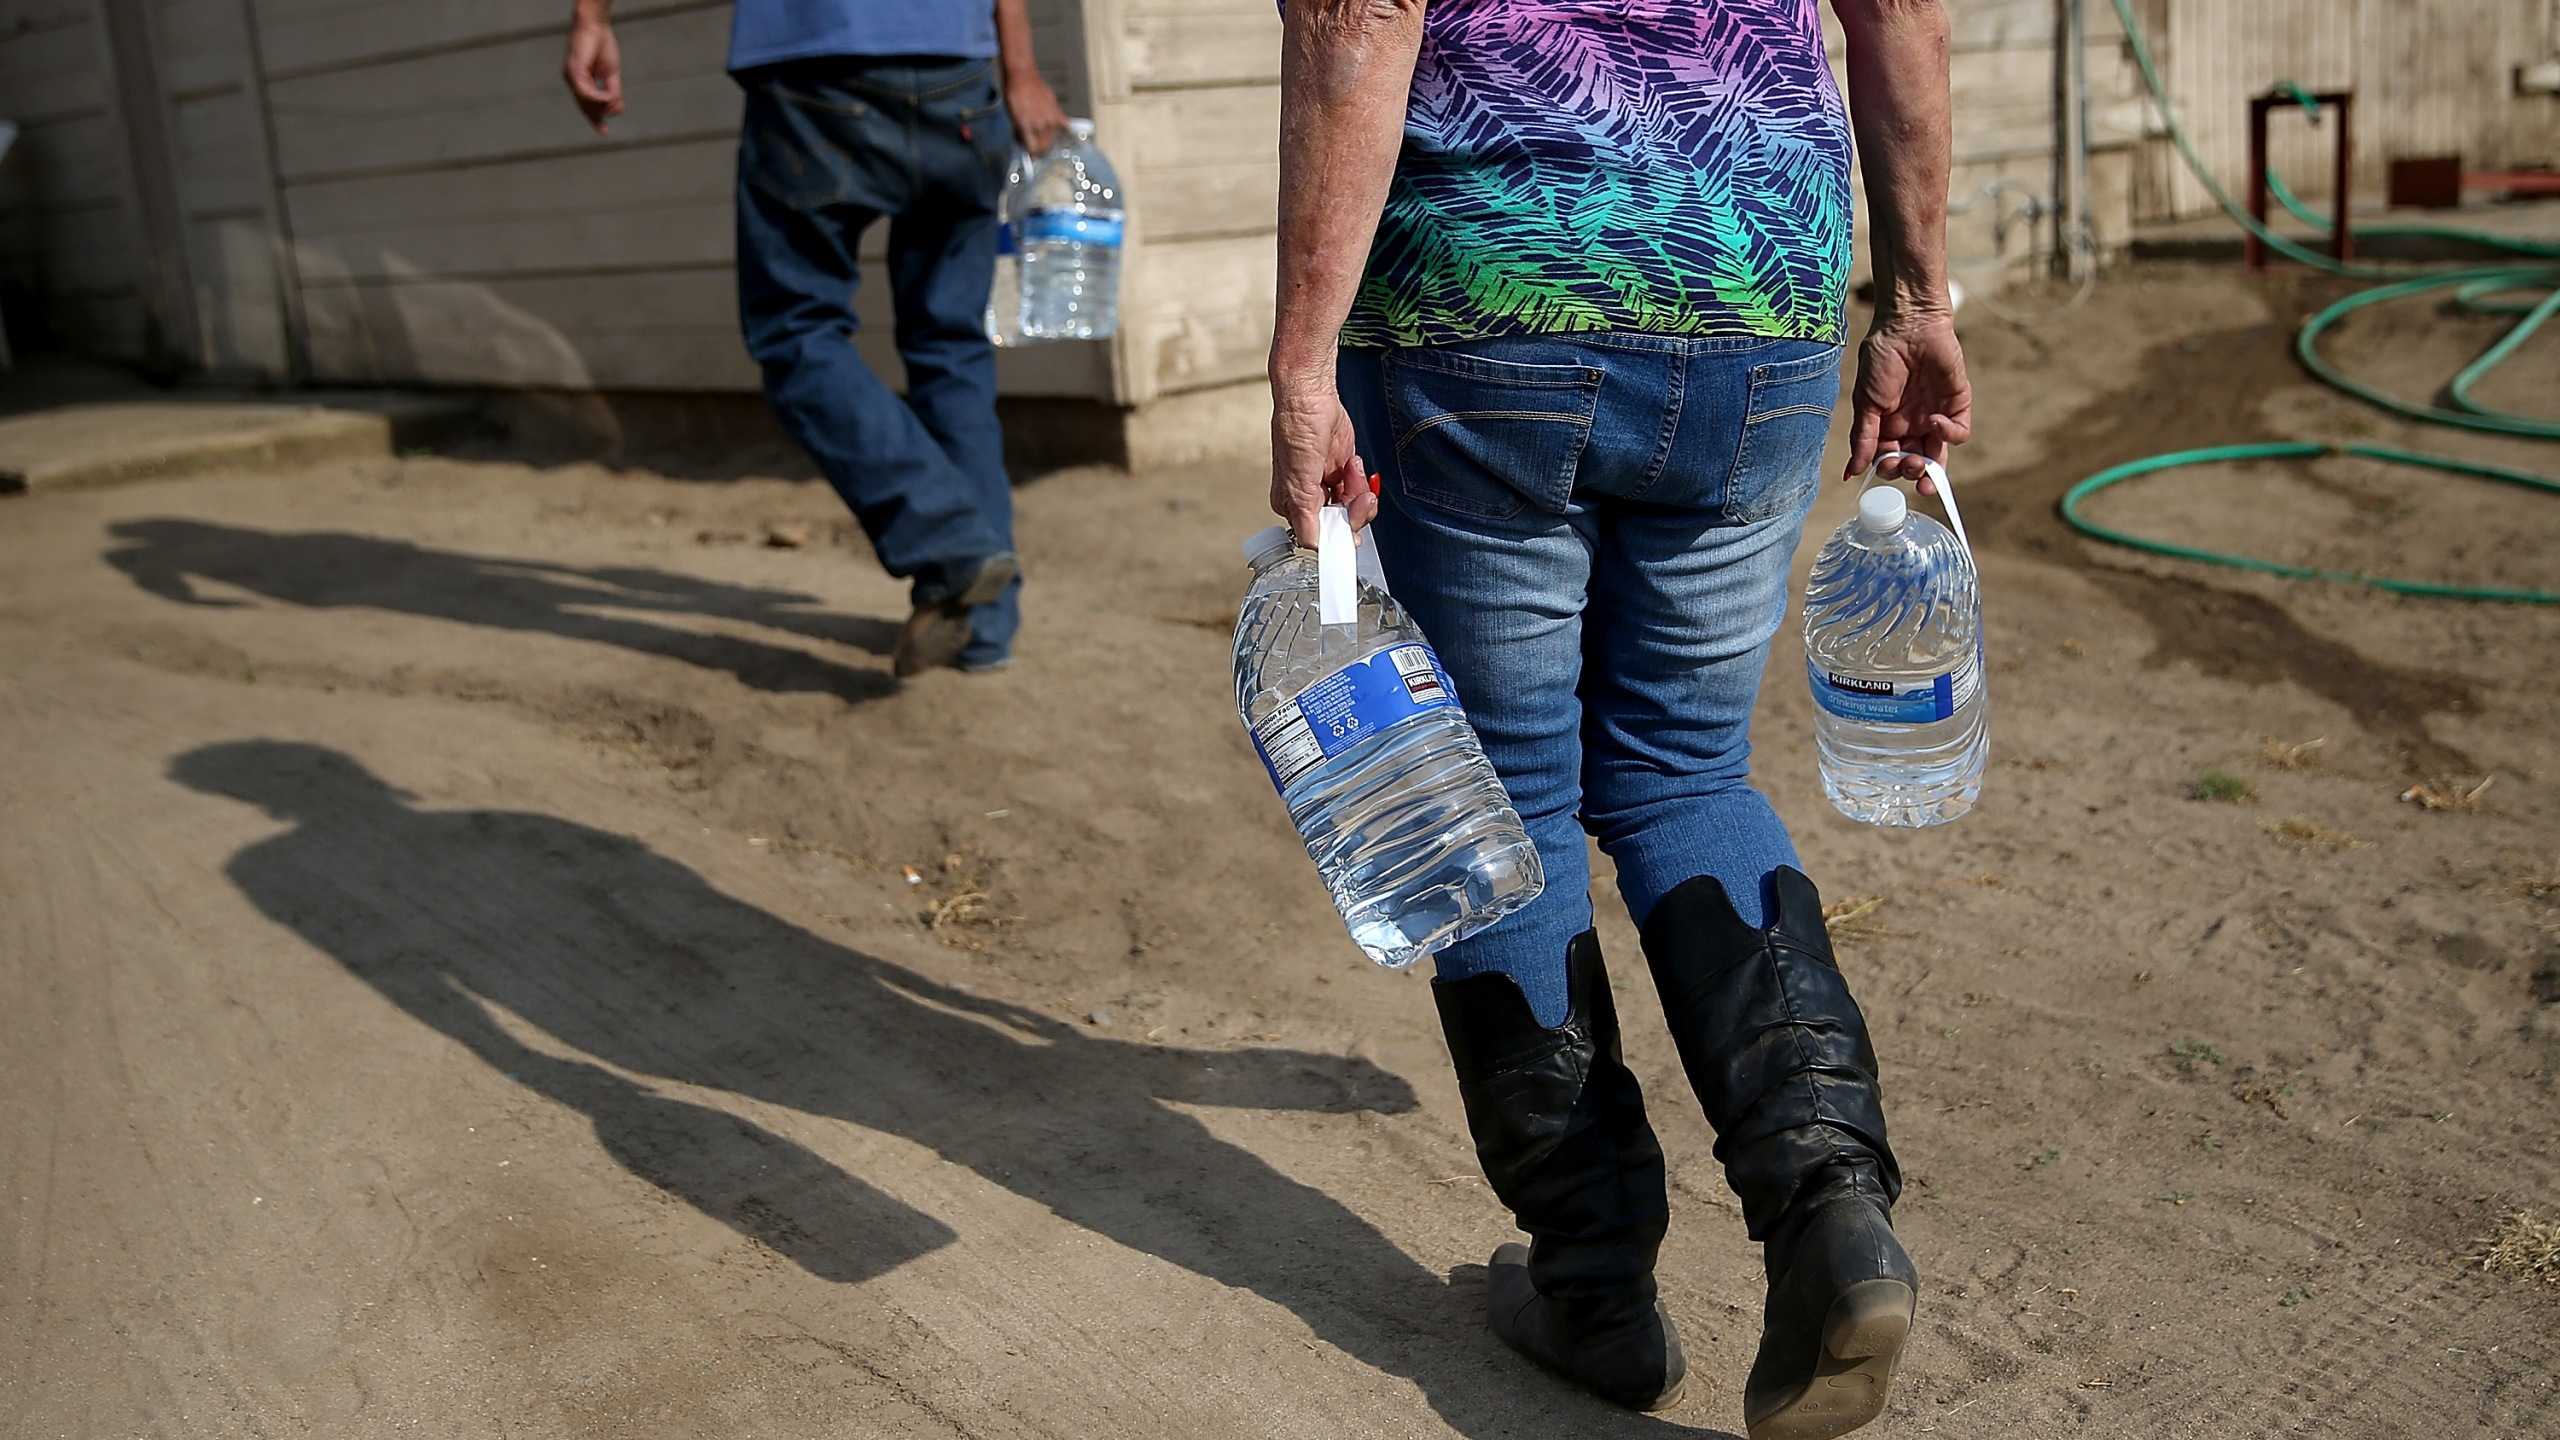 Donna Johnson (R) delivers drinking water to a resident who has no running water on April 23, 2015, in Porterville, Calif. (Credit: Justin Sullivan/Getty Images)